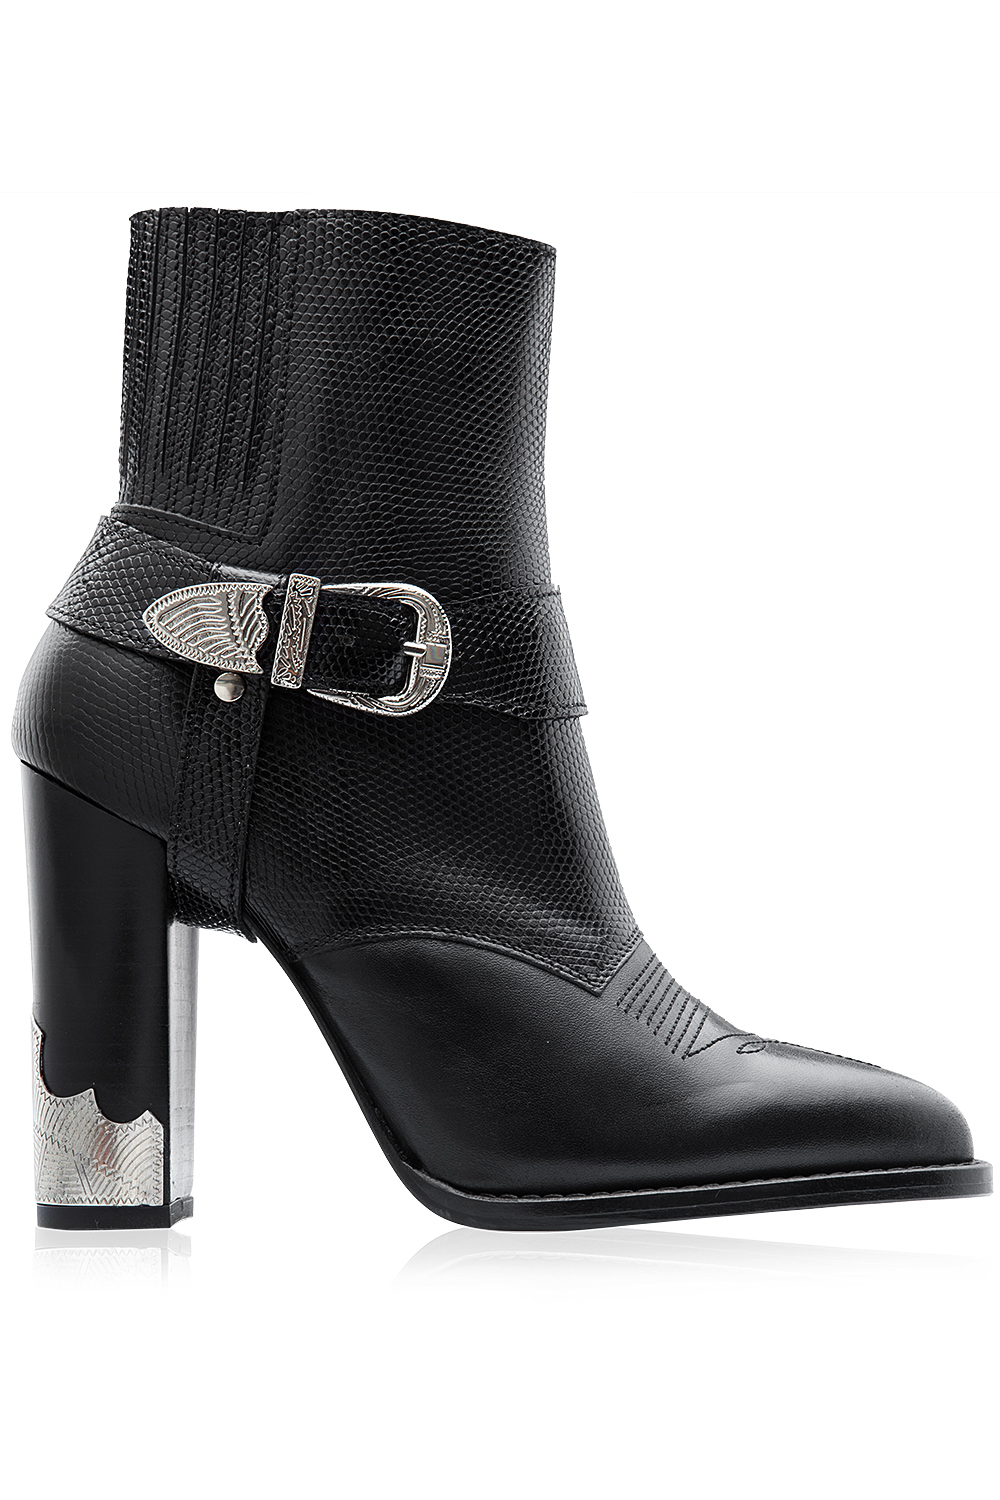 Toga Pulla Buckle Detail High Heel Boots Black 365ist